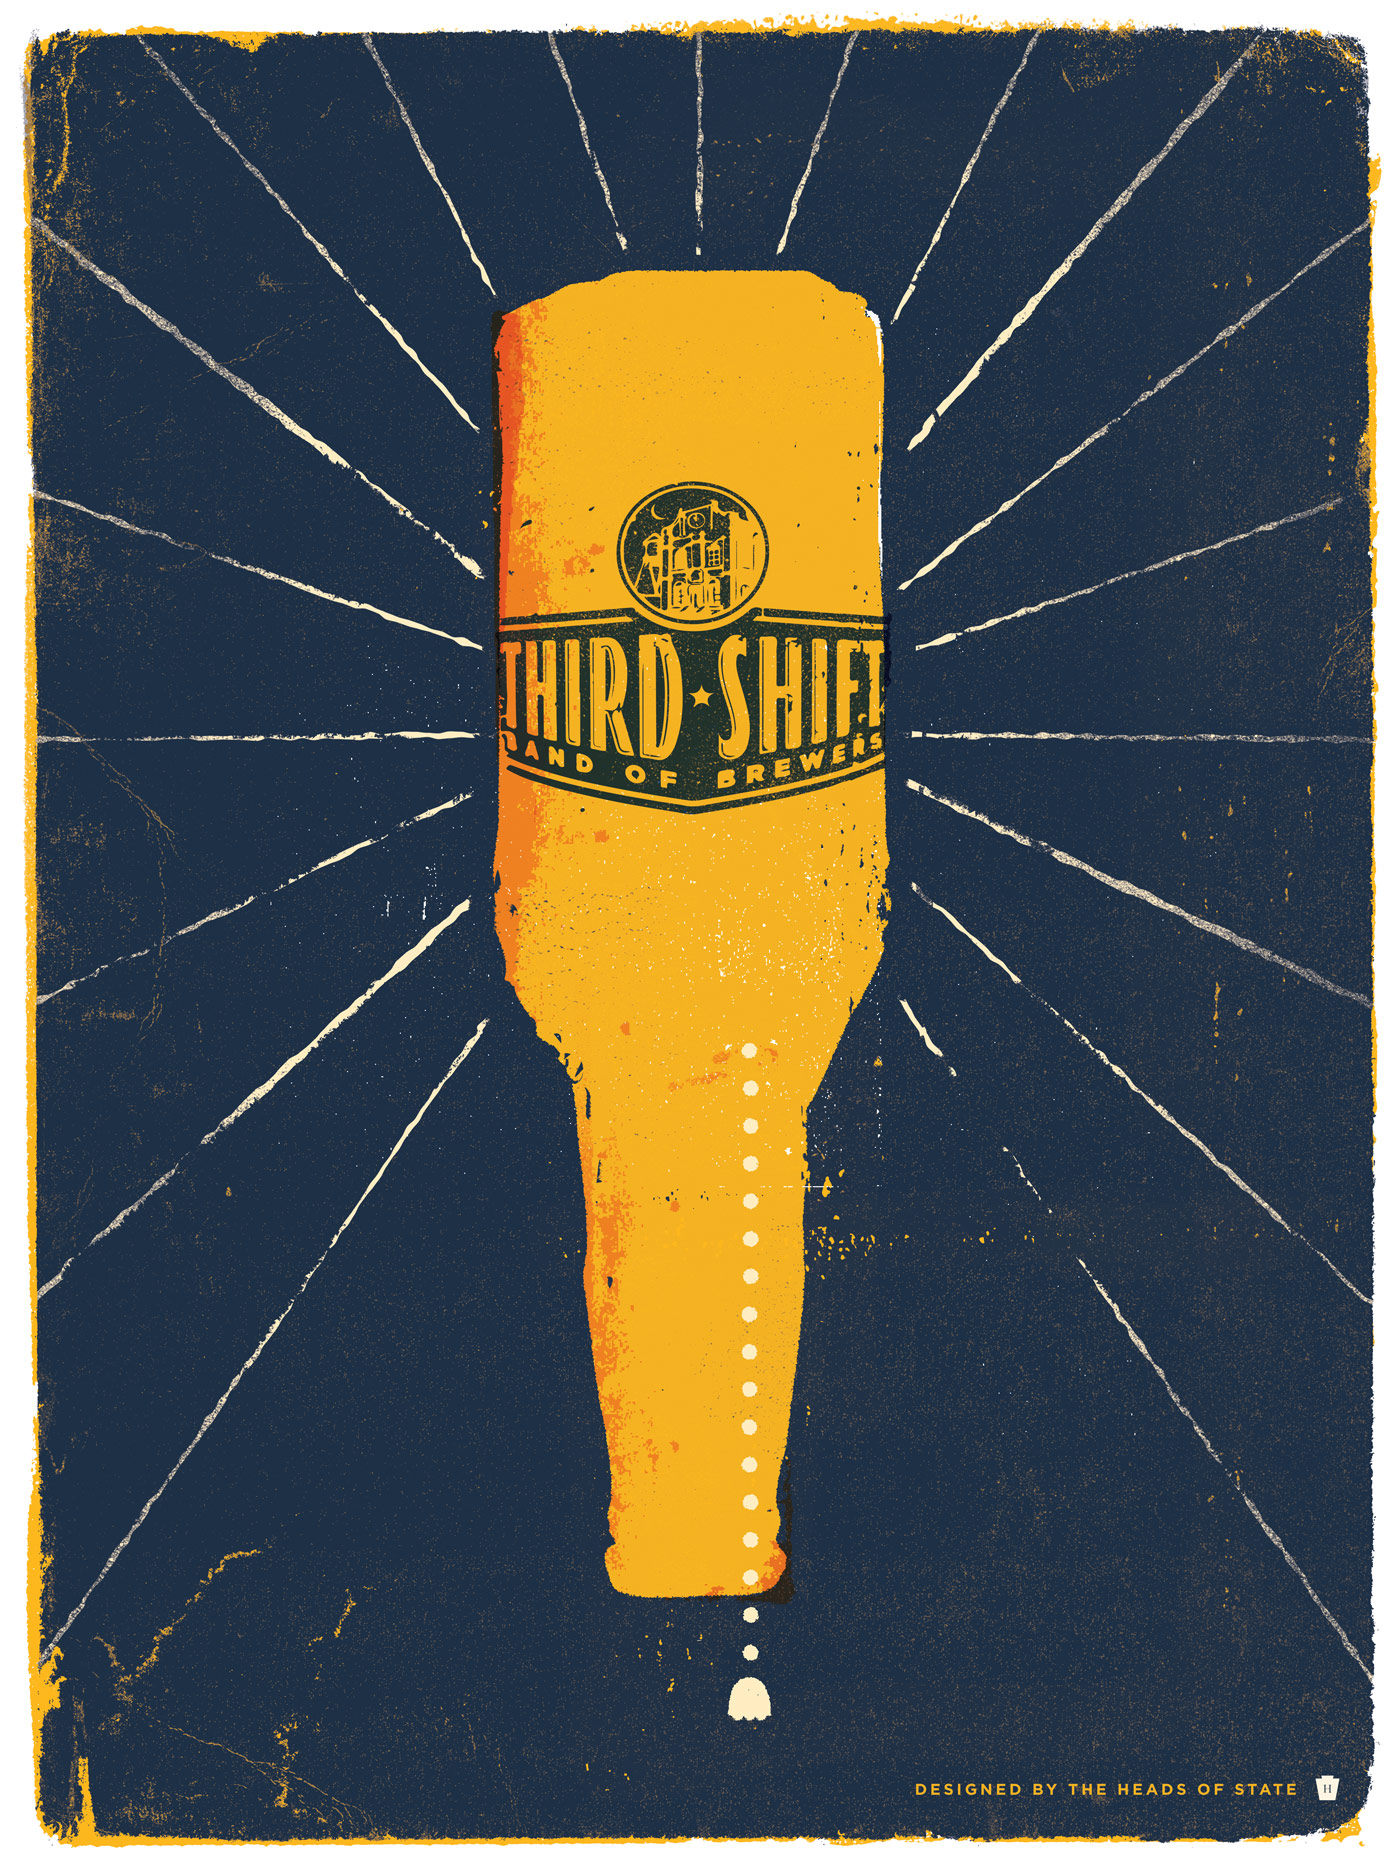 Miller Beer - Third Shift Poster Series - The Heads of State